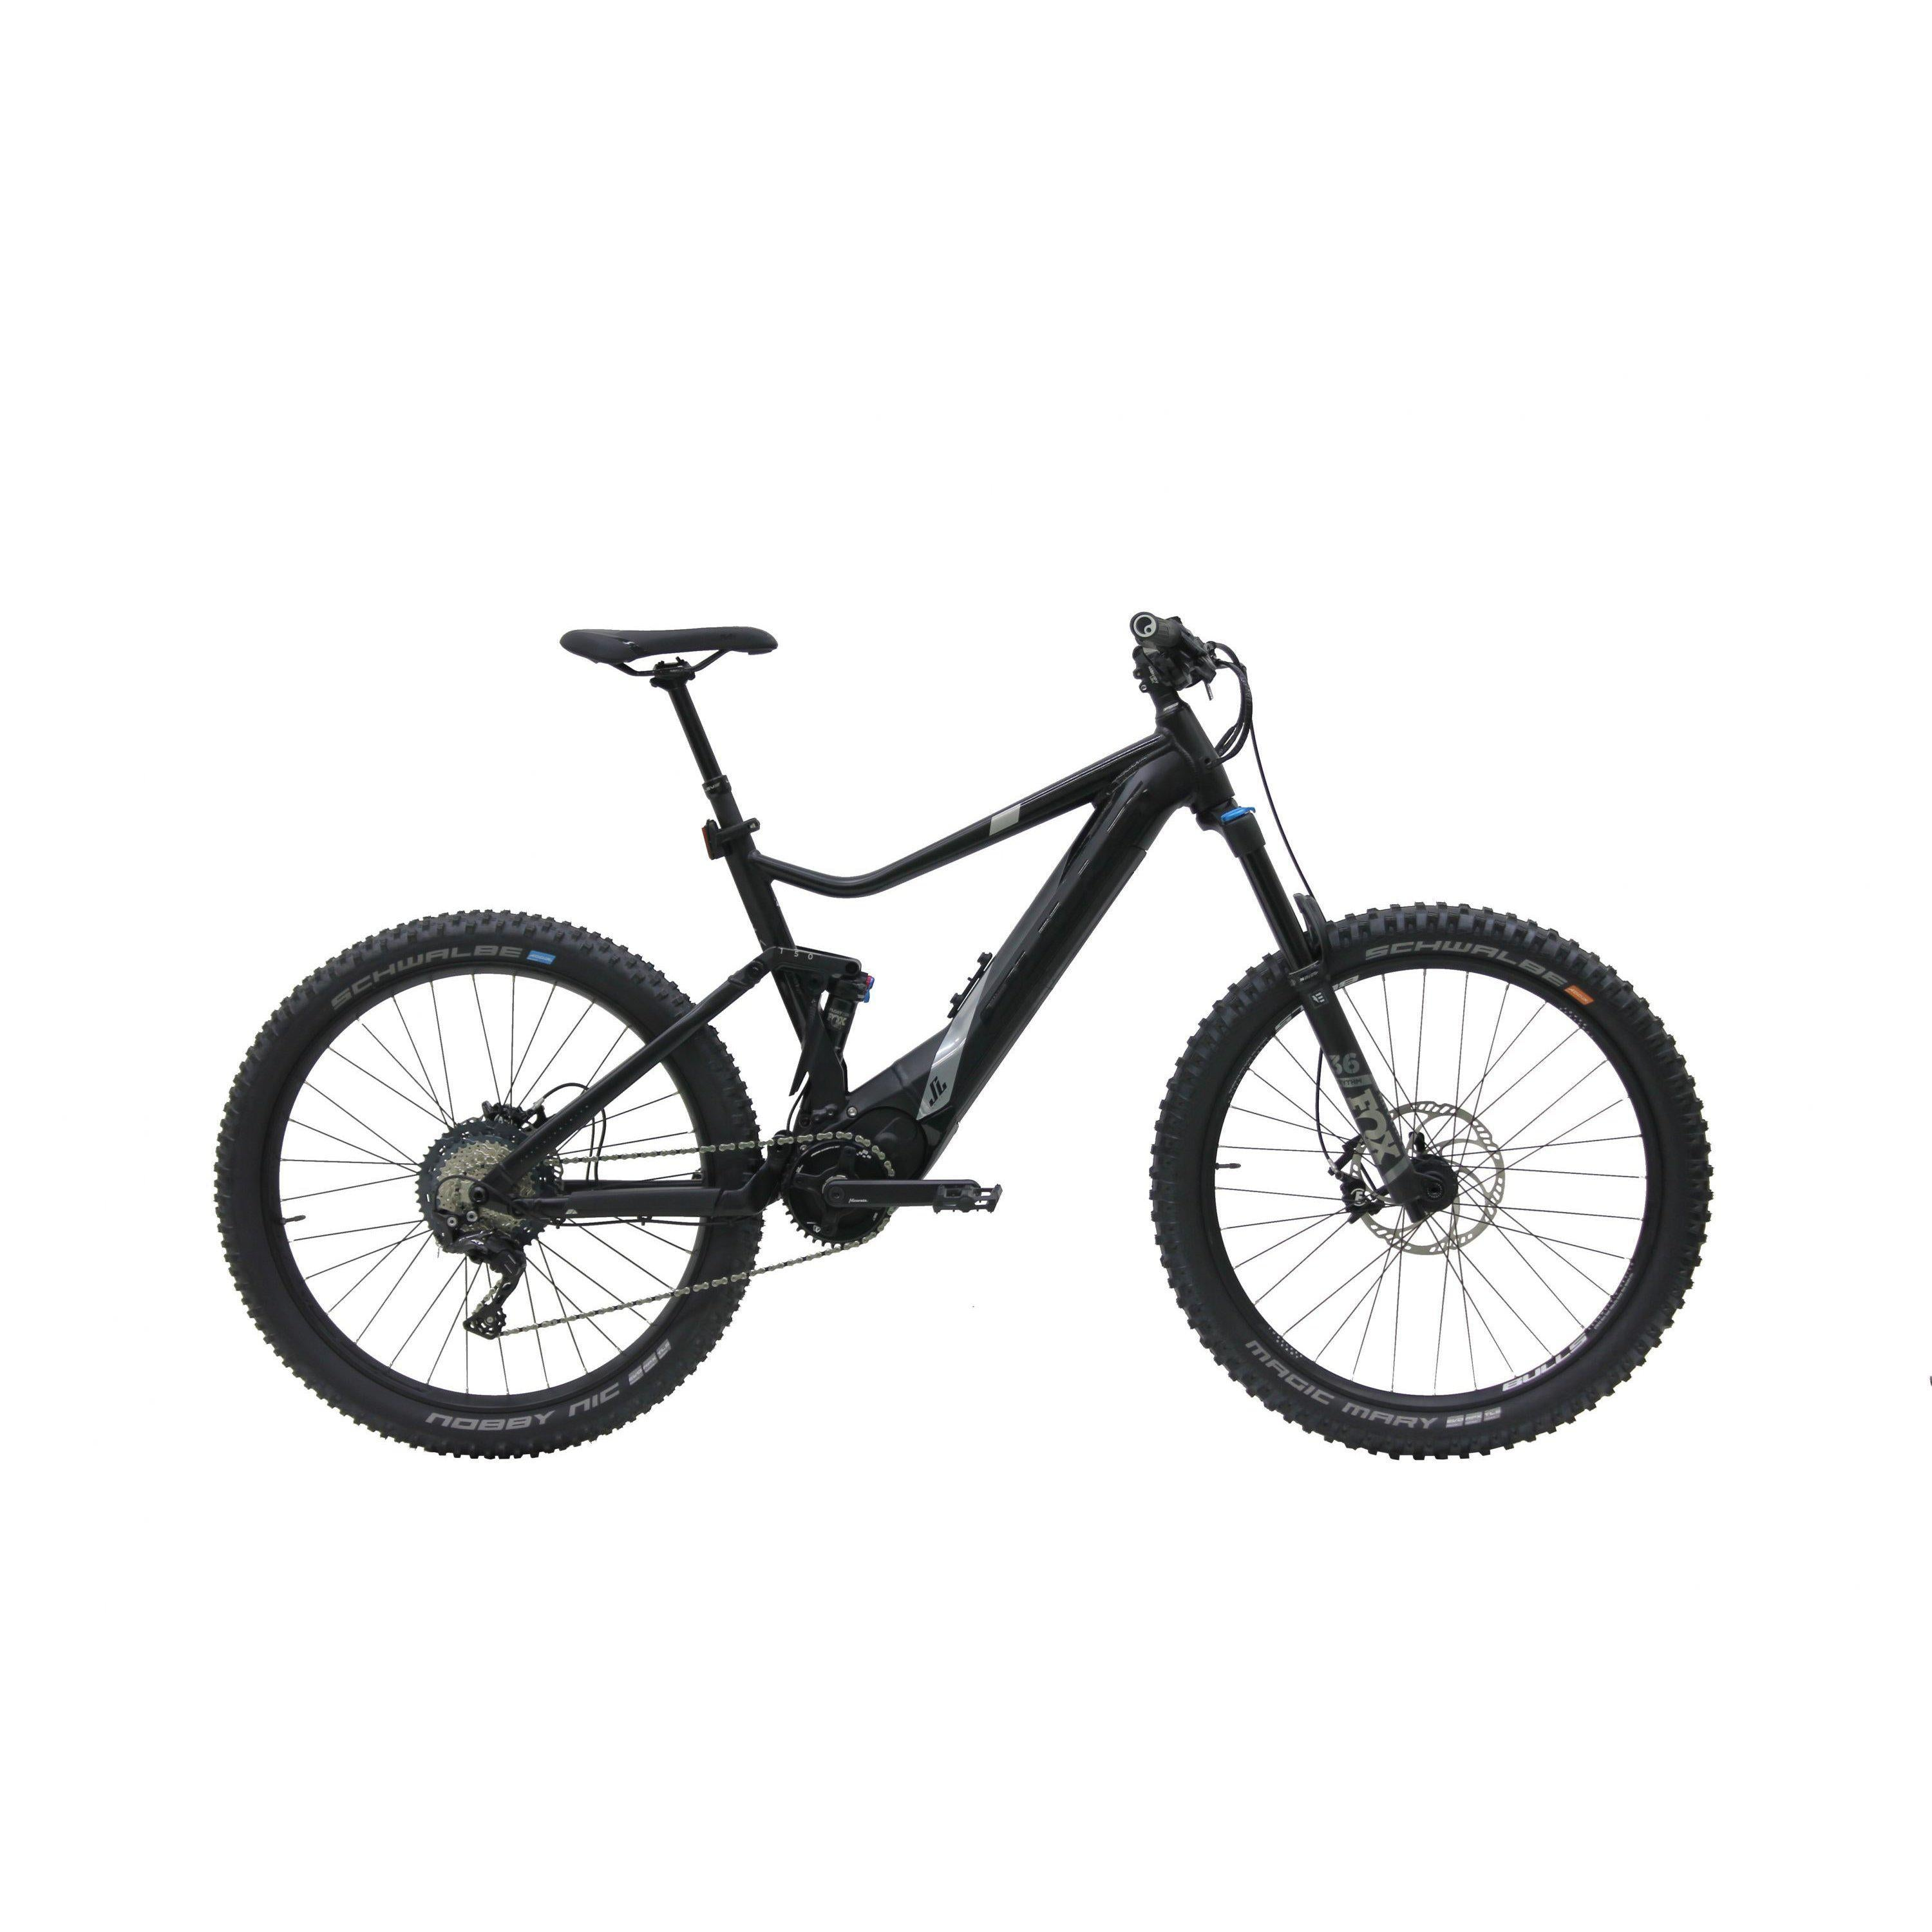 BULLS E-STREAM EVO AM 4 (S MAG)-Oregon E-Bikes